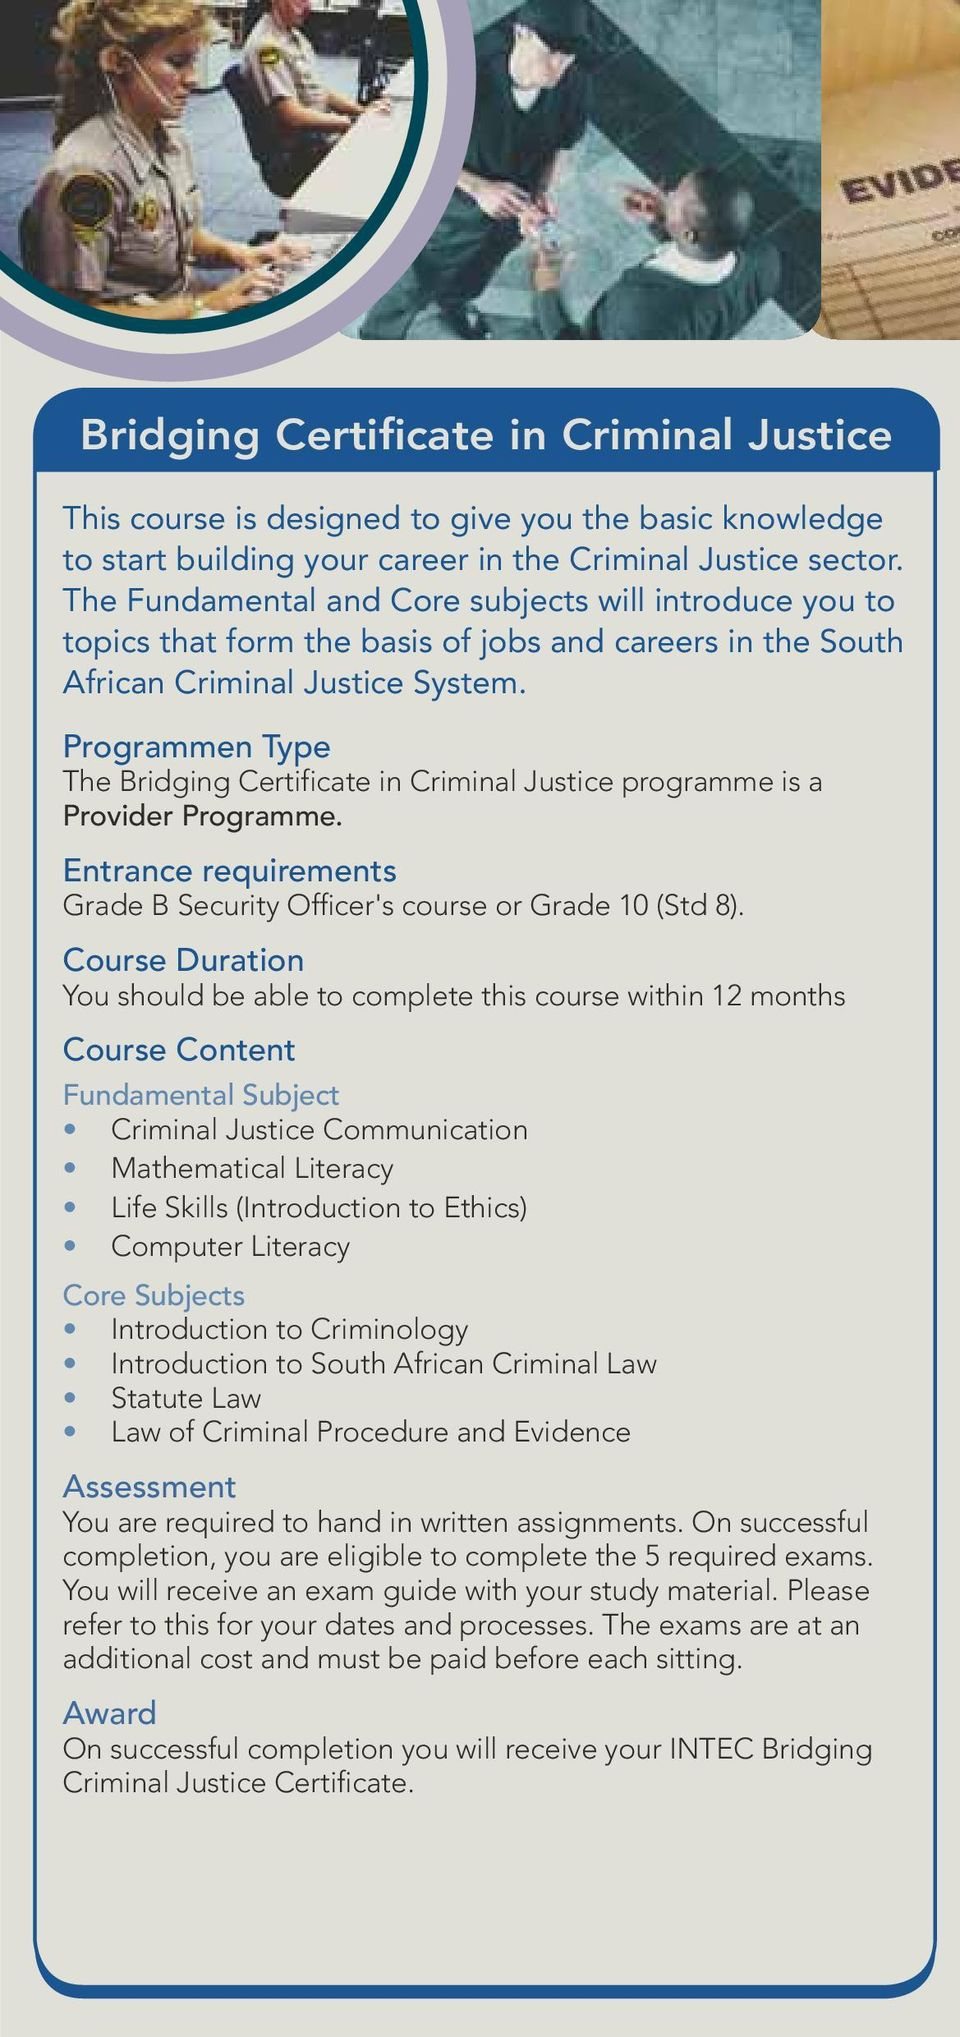 Programmen Type The Bridging Certificate in Criminal Justice programme is a Provider Programme. Entrance requirements Grade B Security Officer's course or Grade 10 (Std 8).